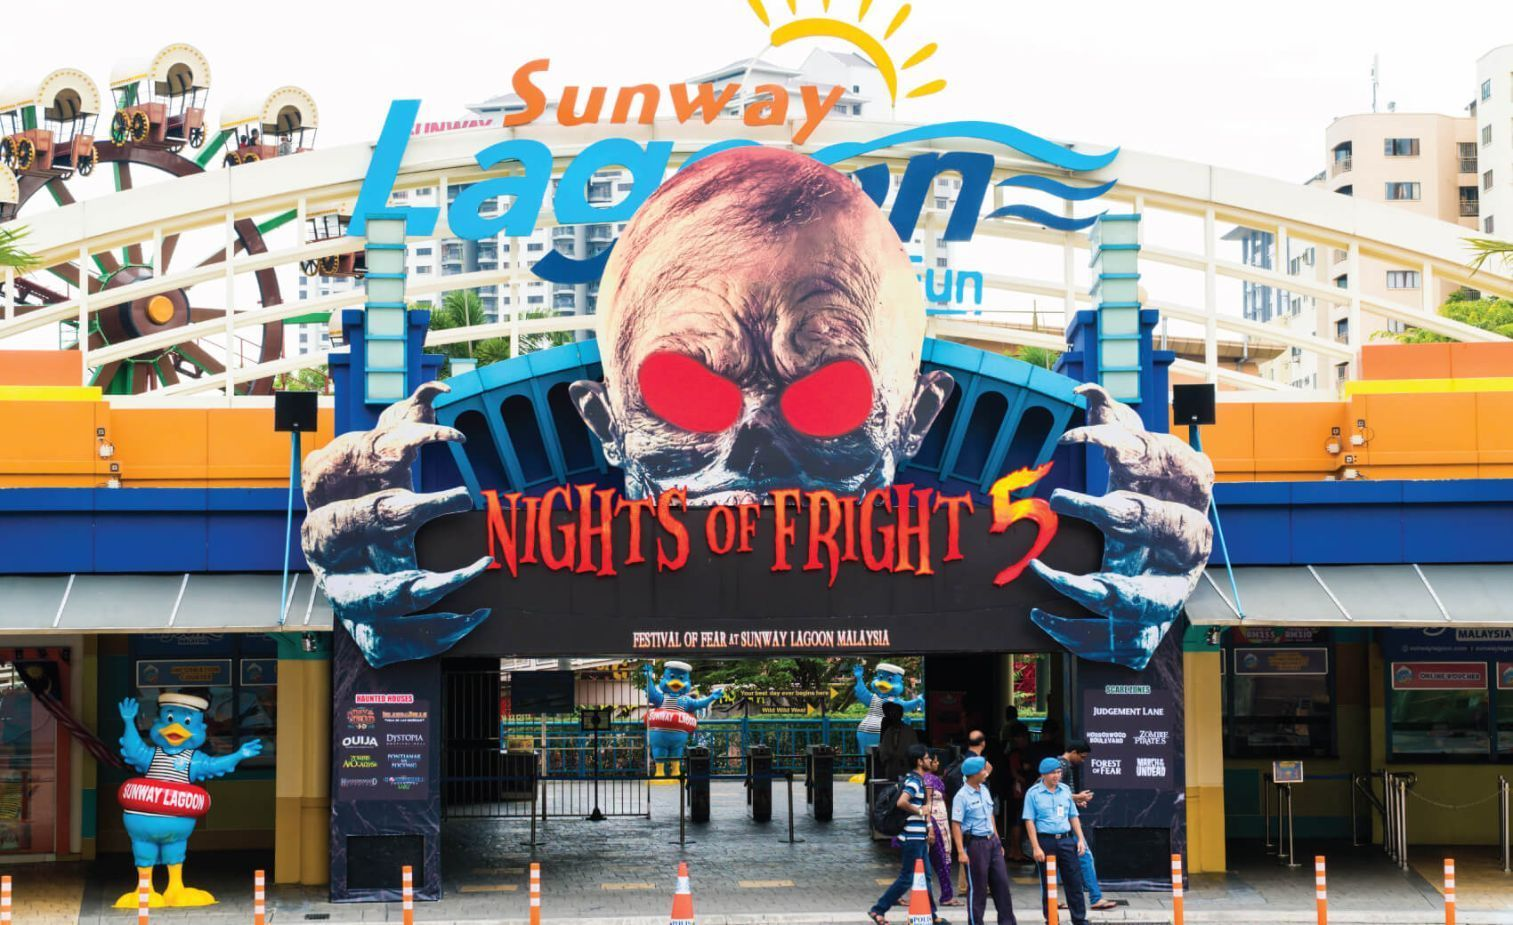 Sunway Lagoon theme park entrance, with Festival of Fear Billboard